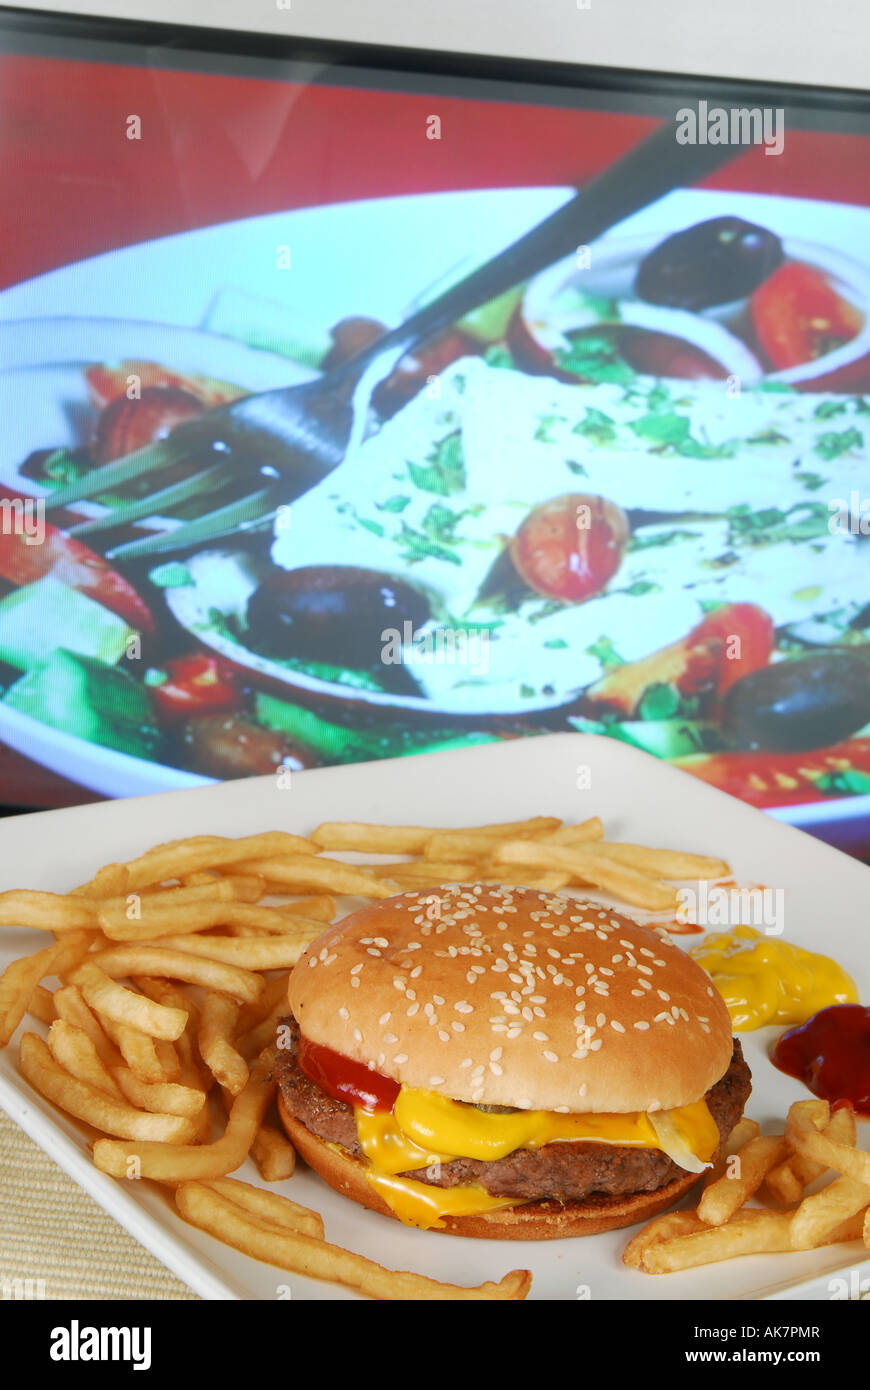 Concept shot to show unhealthy fast food TV dinner in front of television cookery programme showing healthy Greek - Stock Image